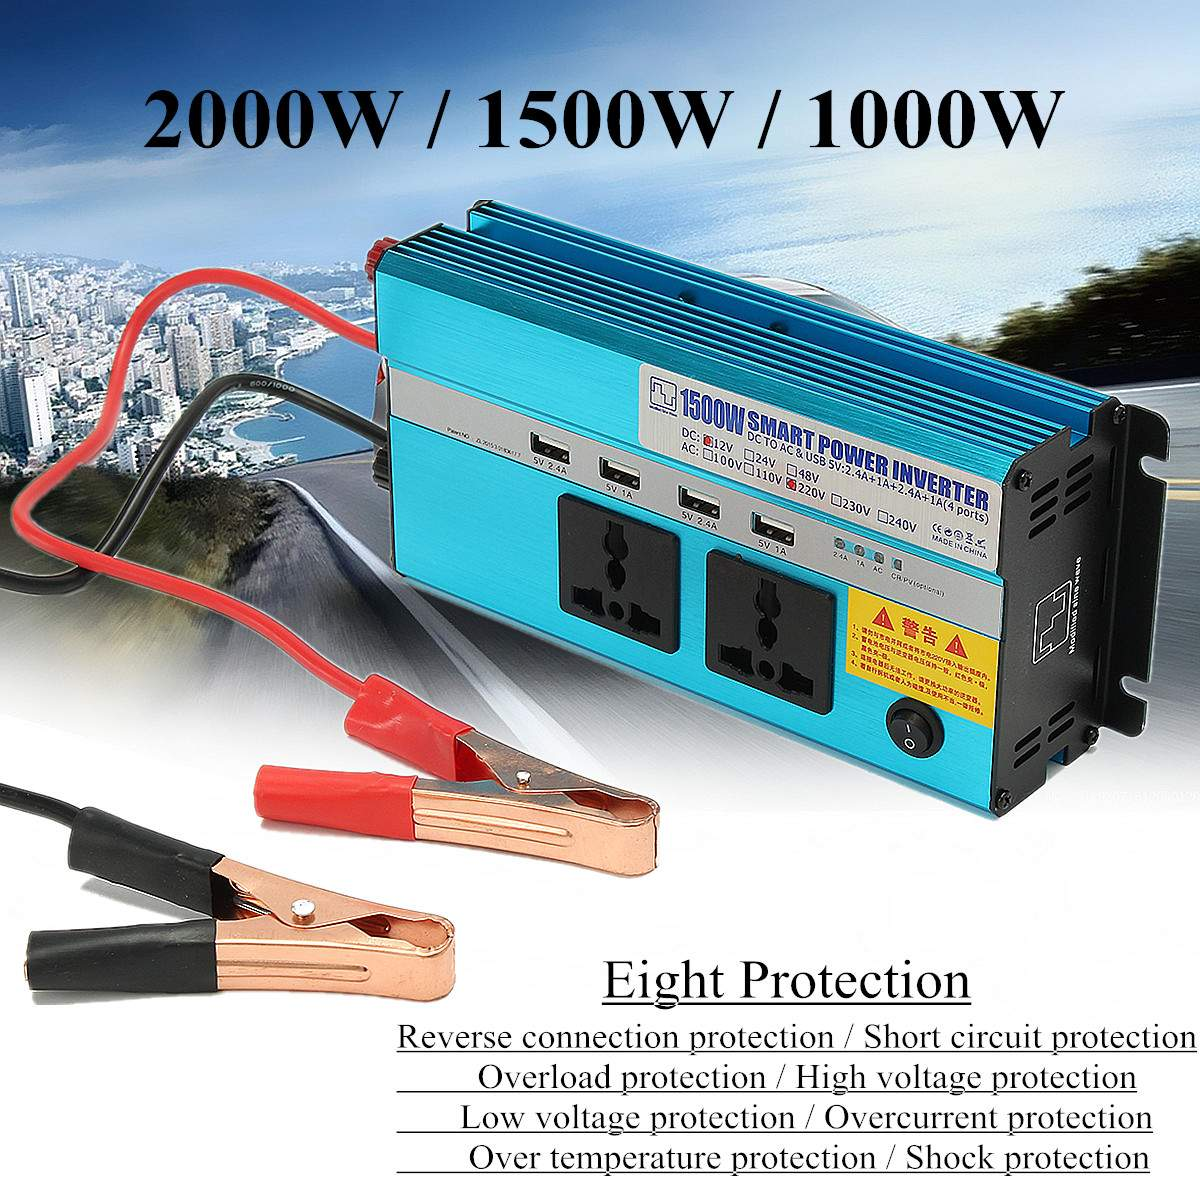 Power Inverter 2000W Auto Modified Sine Wave DC 12V To AC 220V Fast Charging Interface Converter Fuse Cooling Fan ProtectPower Inverter 2000W Auto Modified Sine Wave DC 12V To AC 220V Fast Charging Interface Converter Fuse Cooling Fan Protect